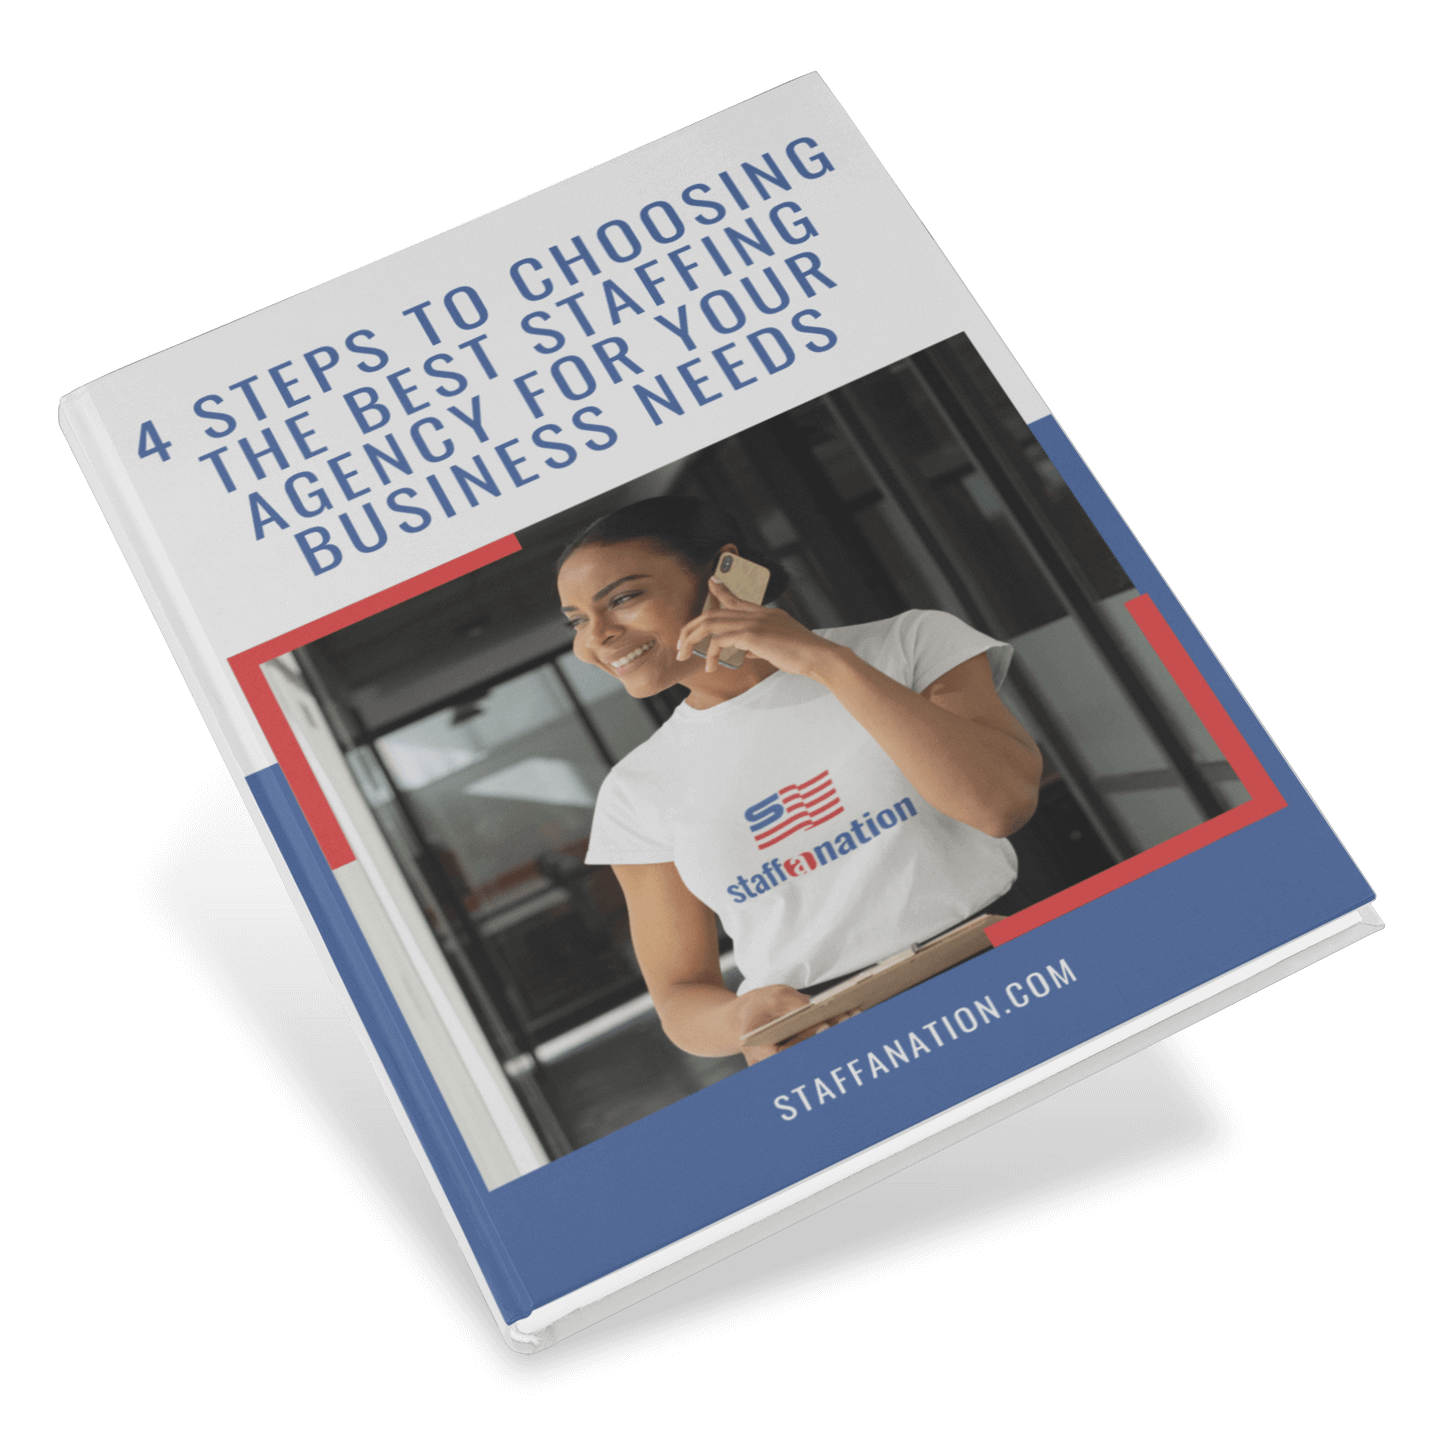 Download our staffing agency ebook